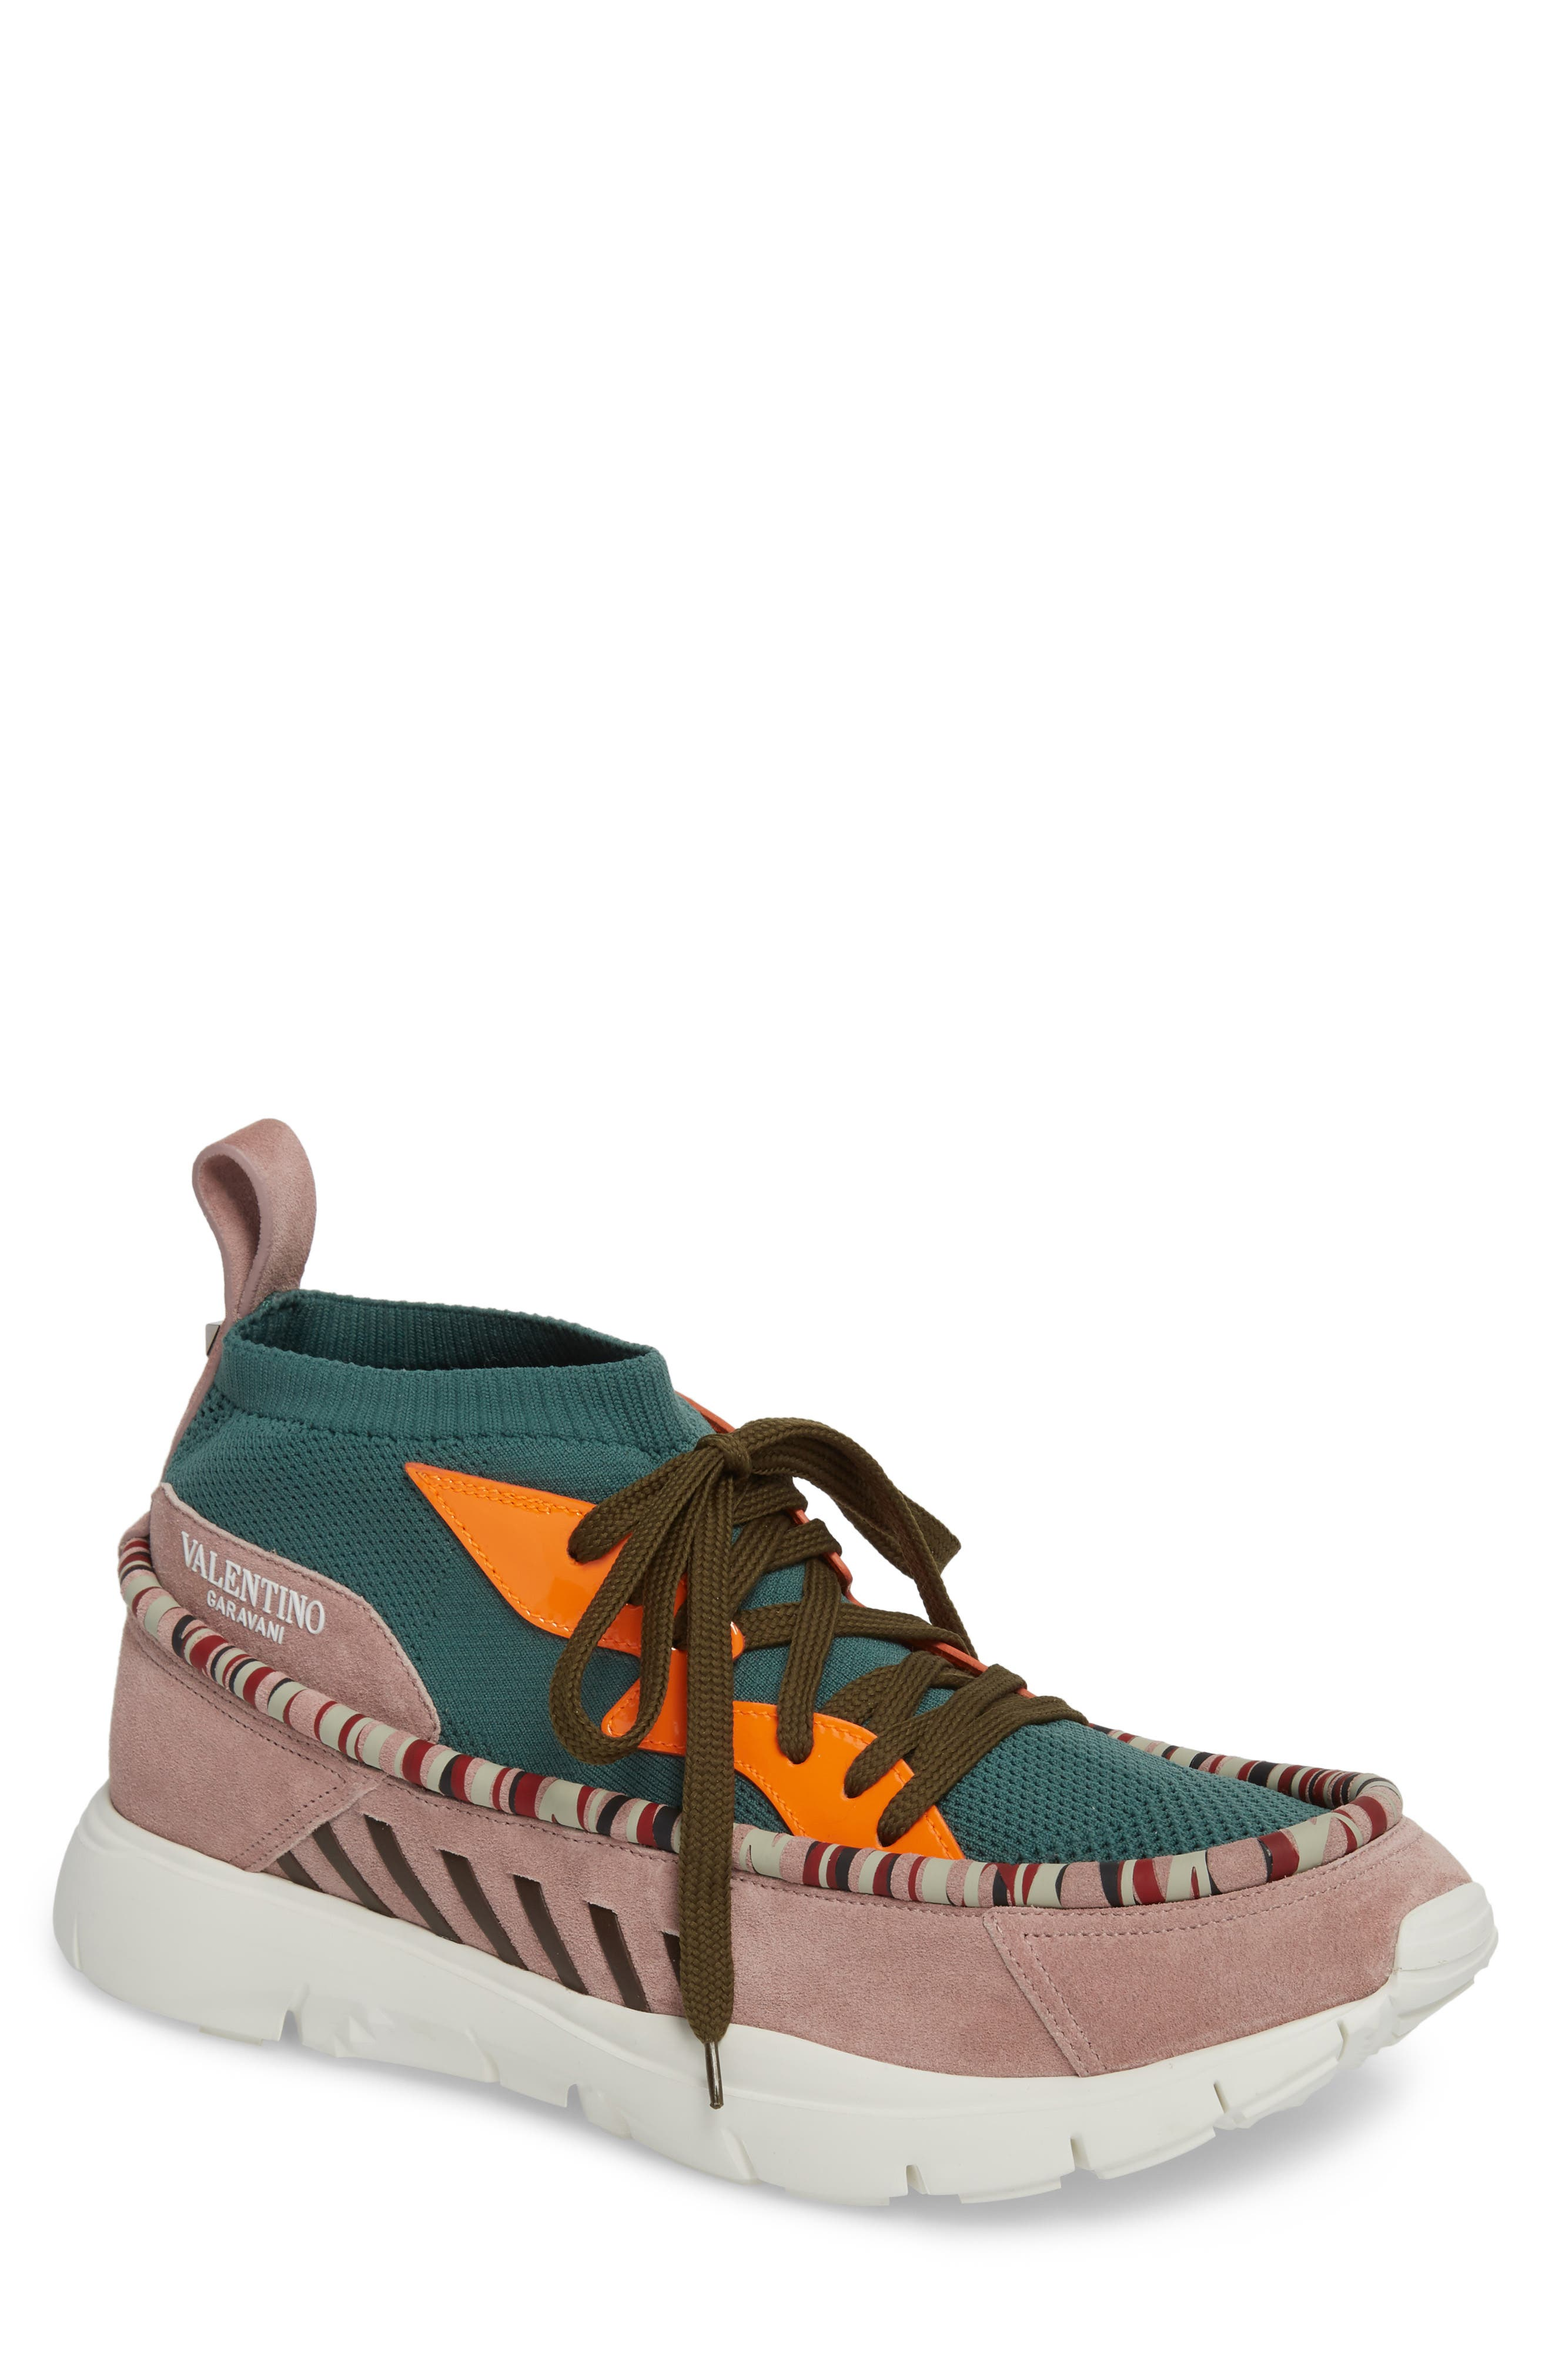 Heroes Sneaker,                         Main,                         color, Olive/ Lipstick